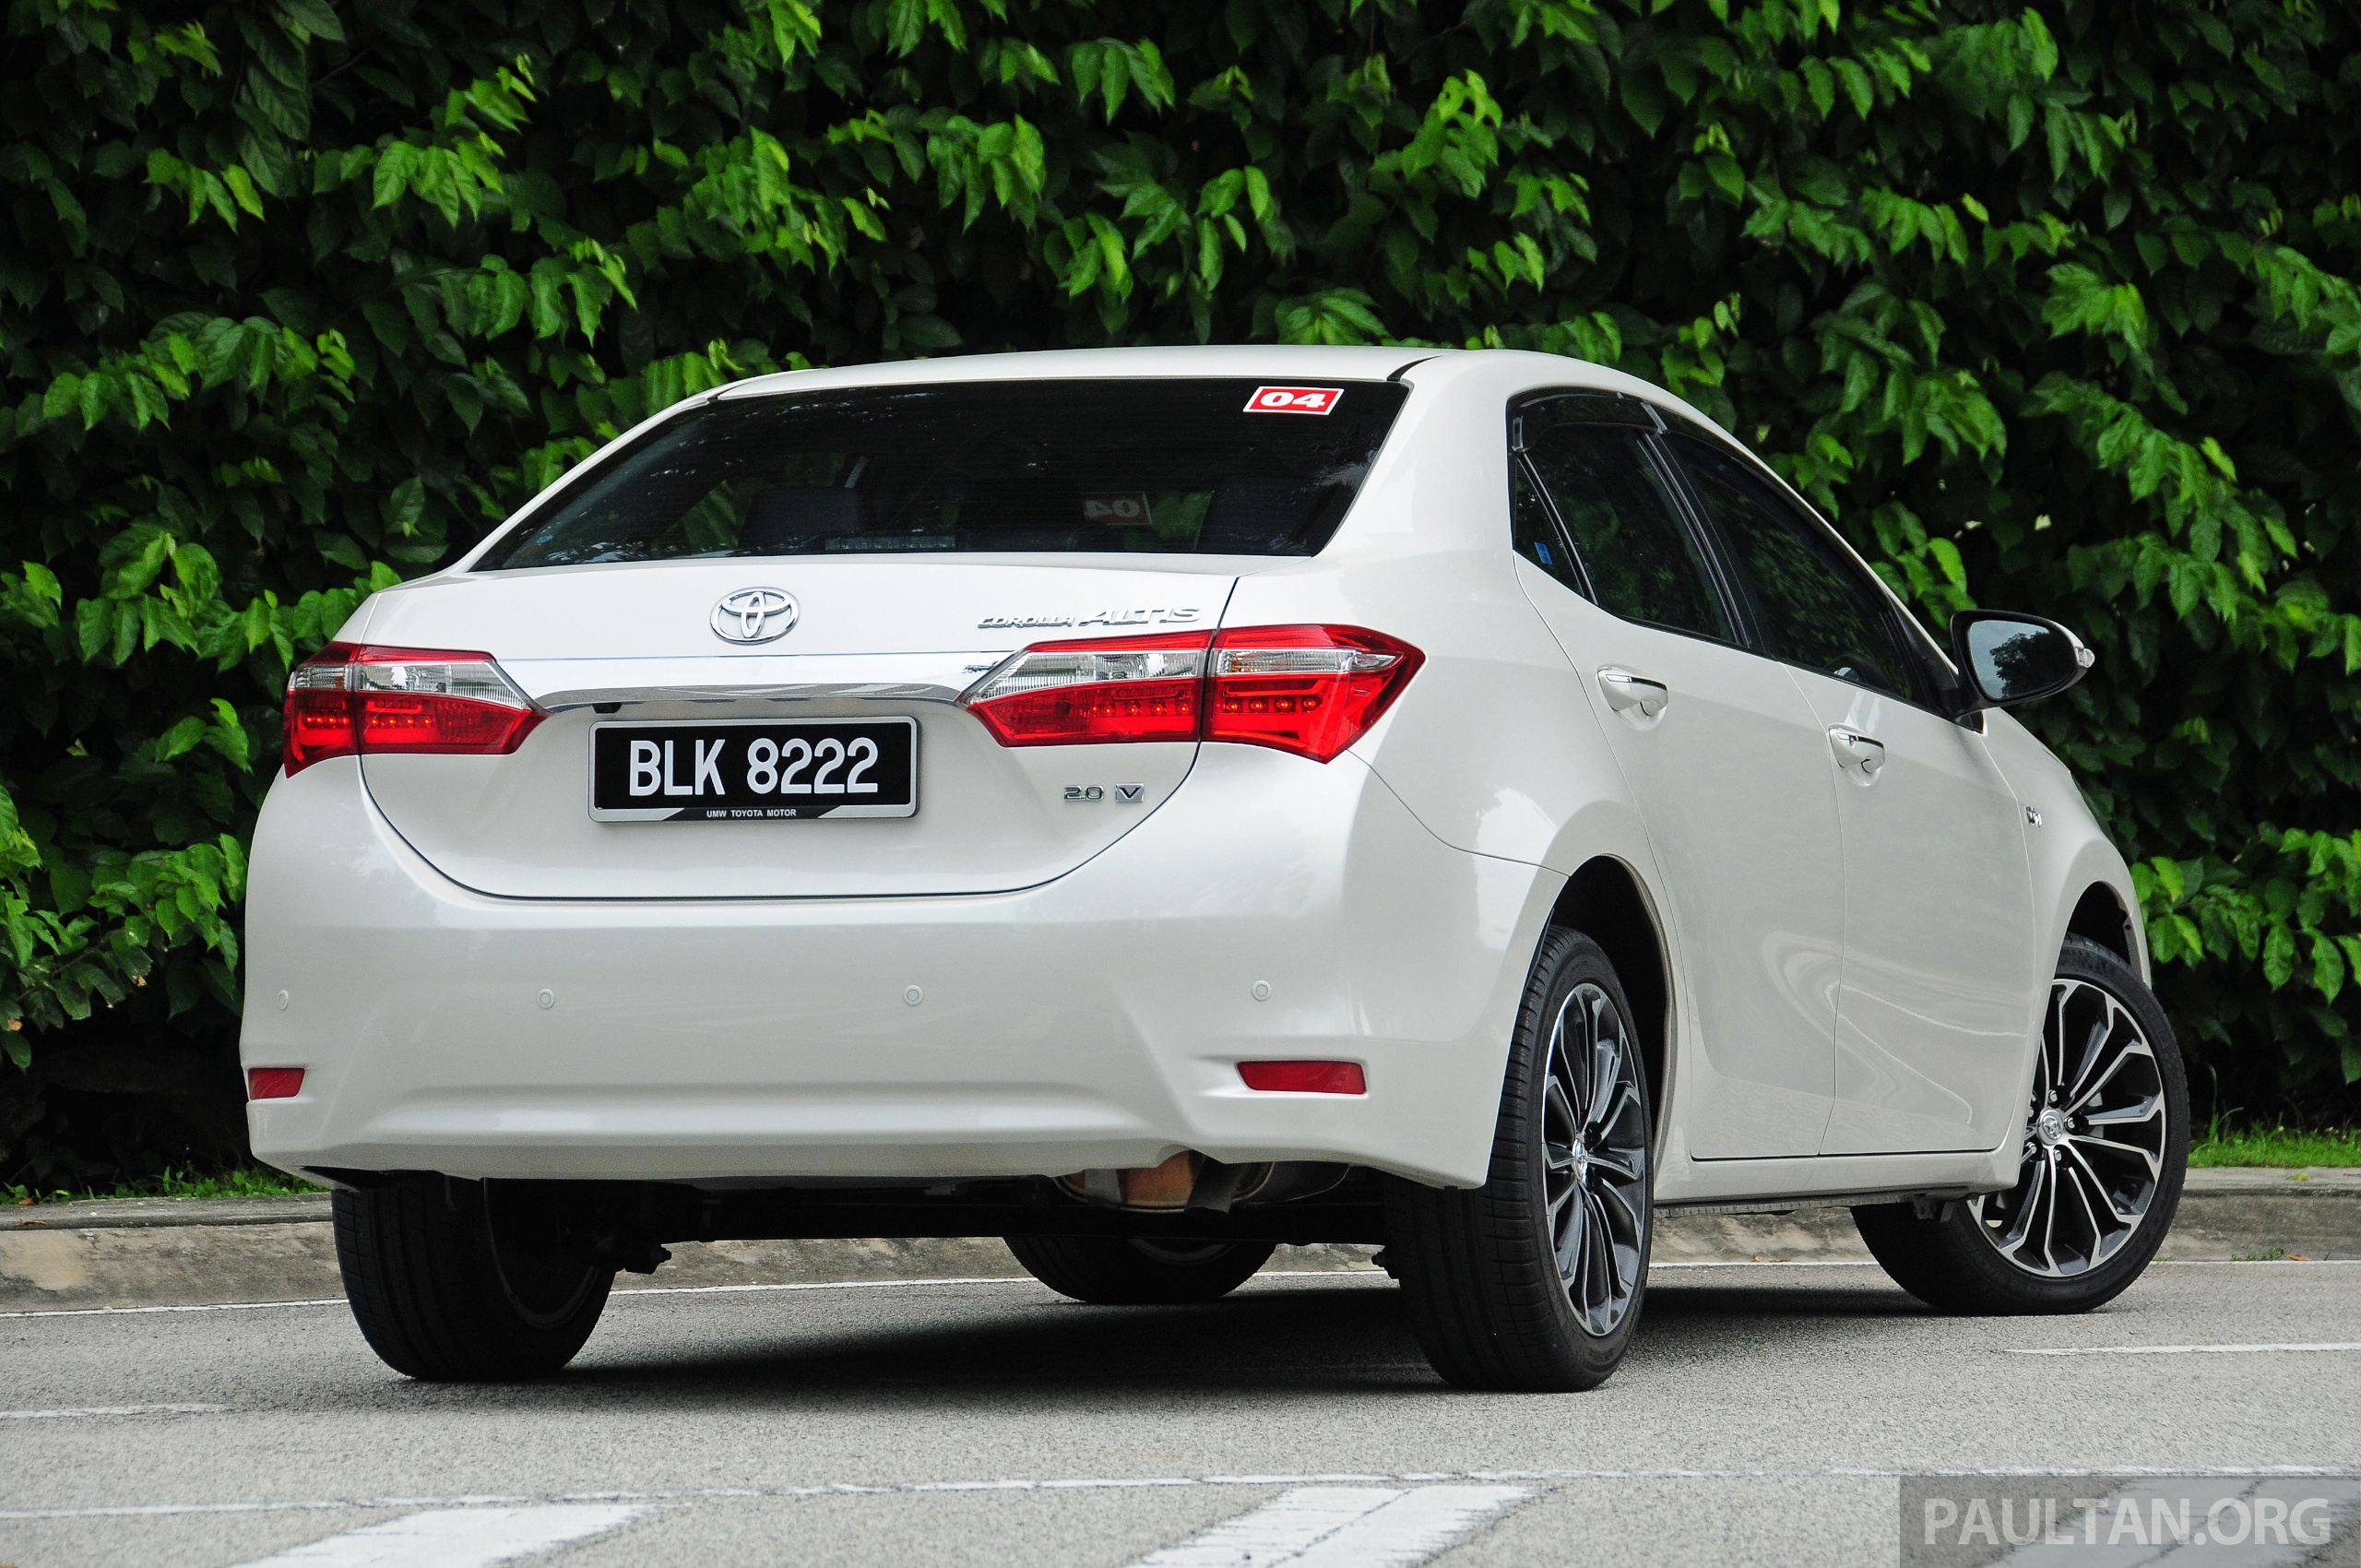 Back to Story: DRIVEN: 2014 Toyota Corolla Altis 2.0V on local roads